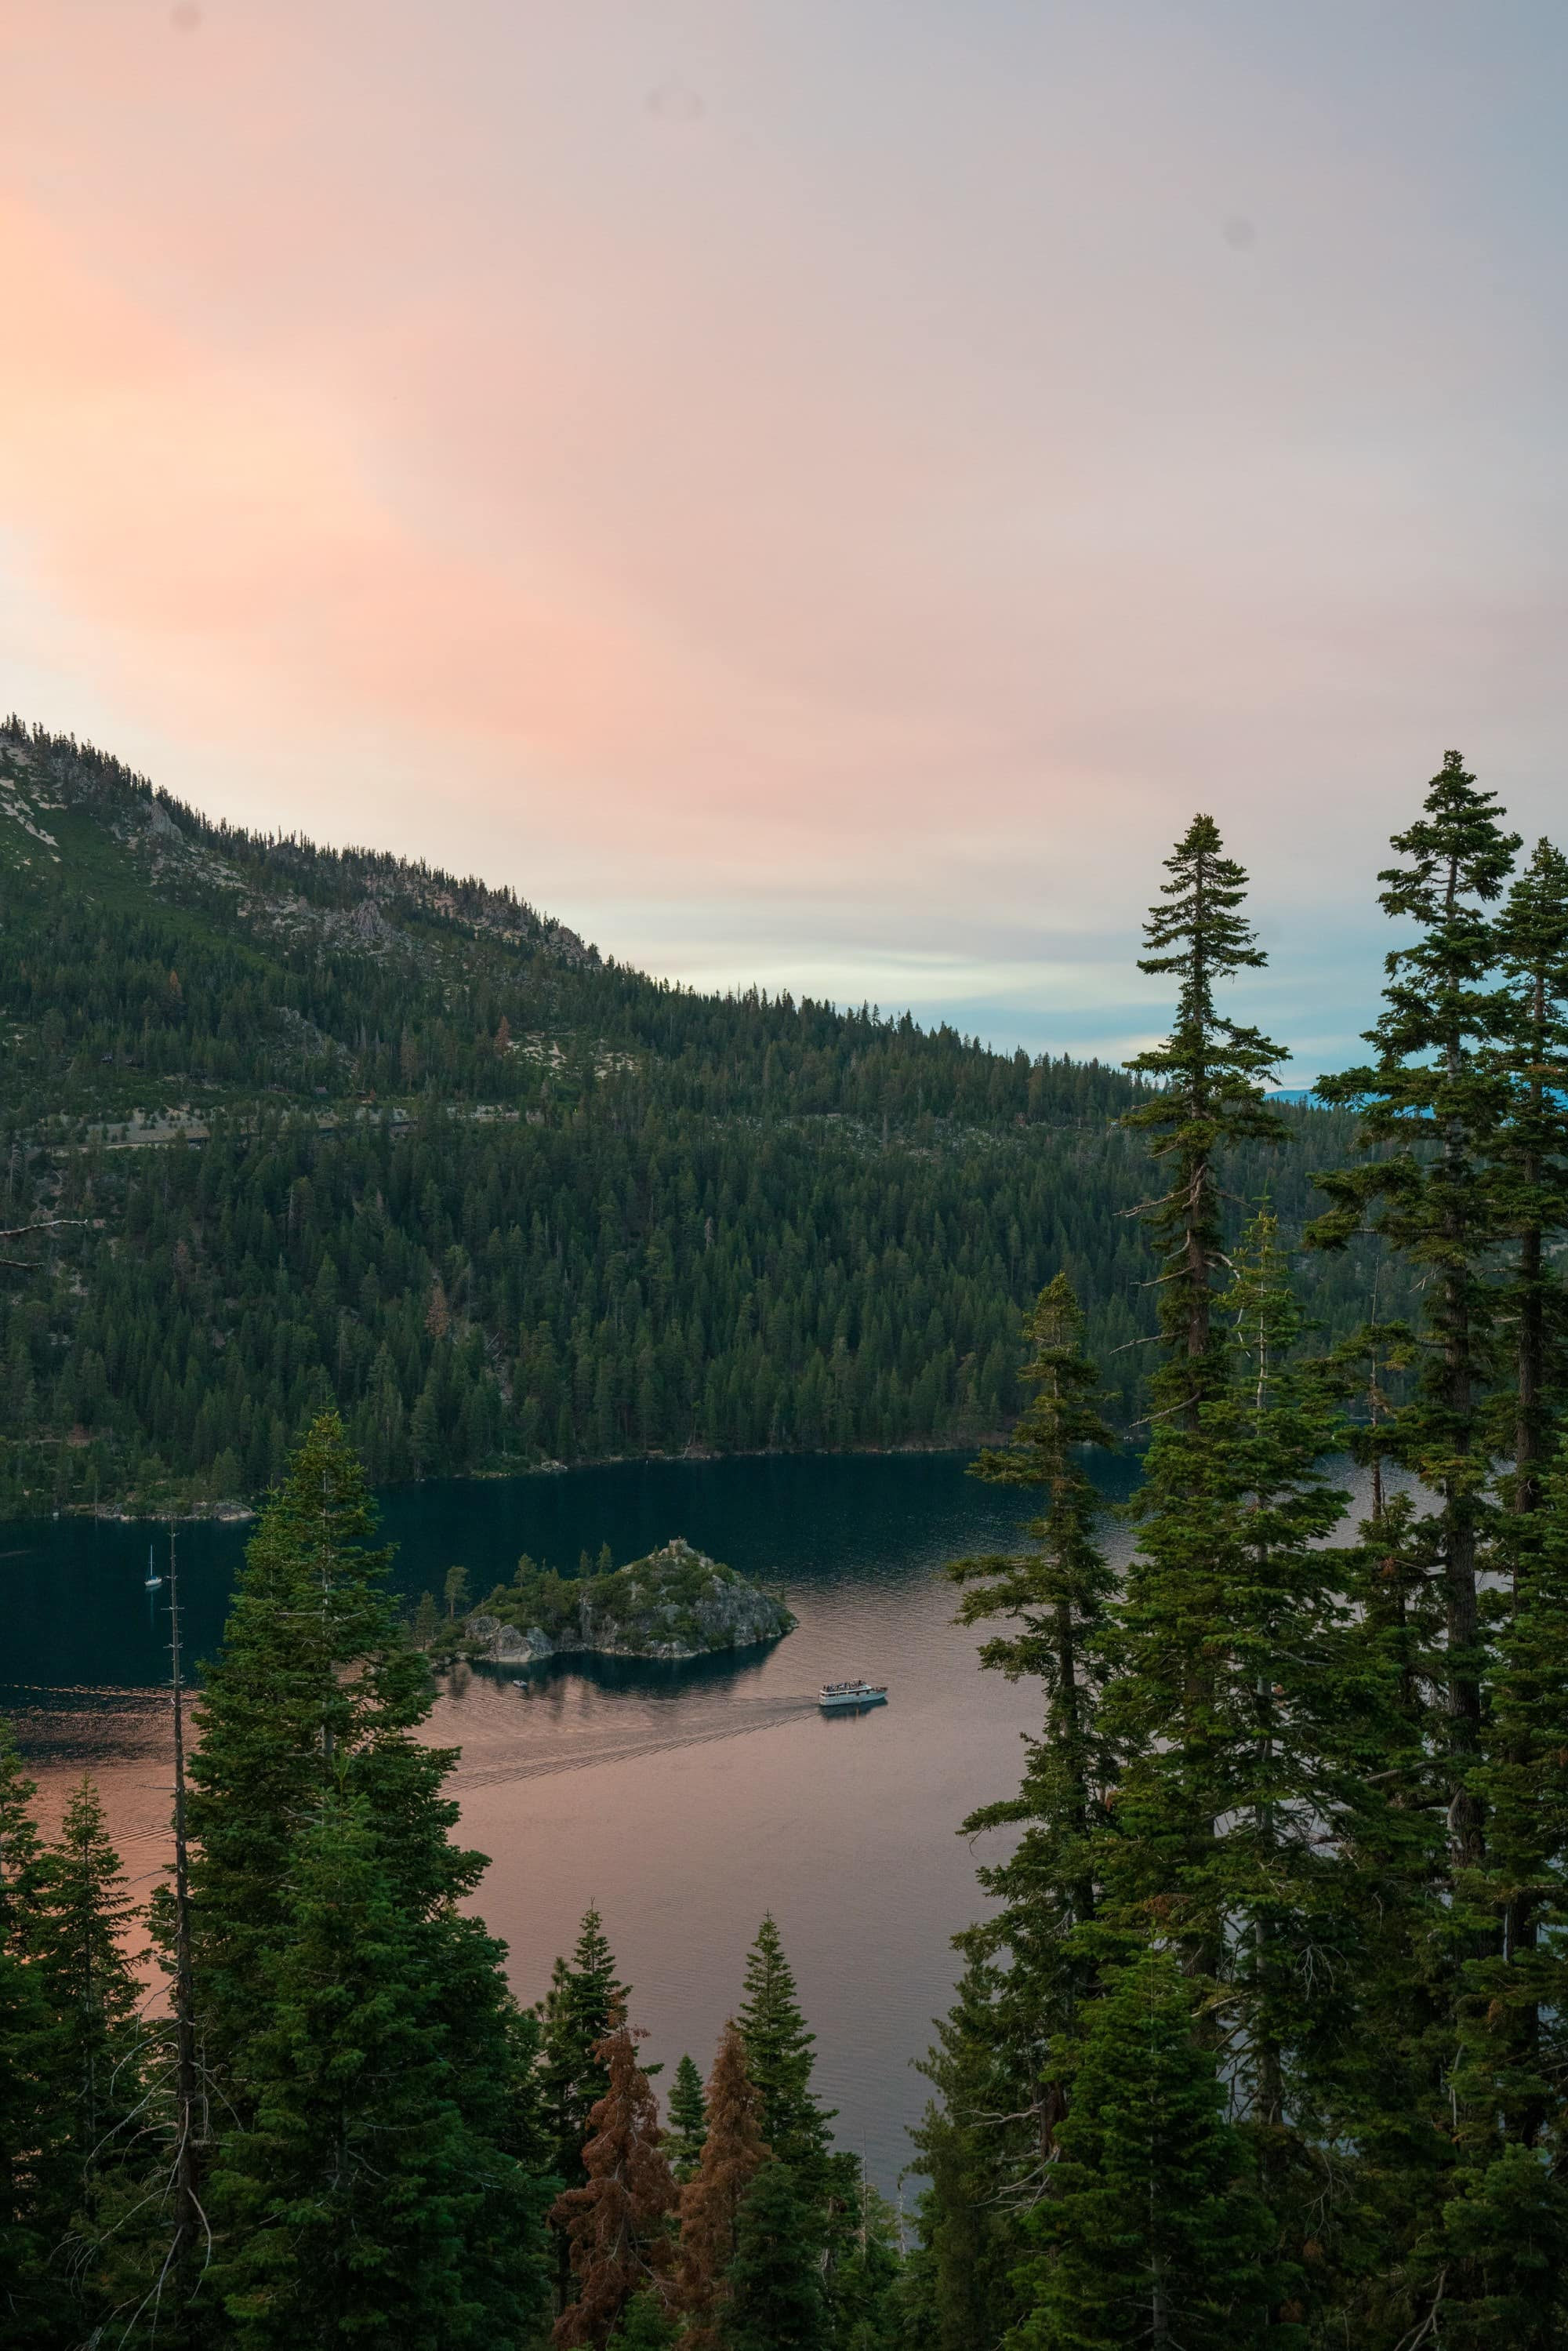 Sunset at Inspiration Point // Planning an adventure-packed vacation to Lake Tahoe? Here are 12 of the best things to do around Lake Tahoe for the outdoor enthusiast.